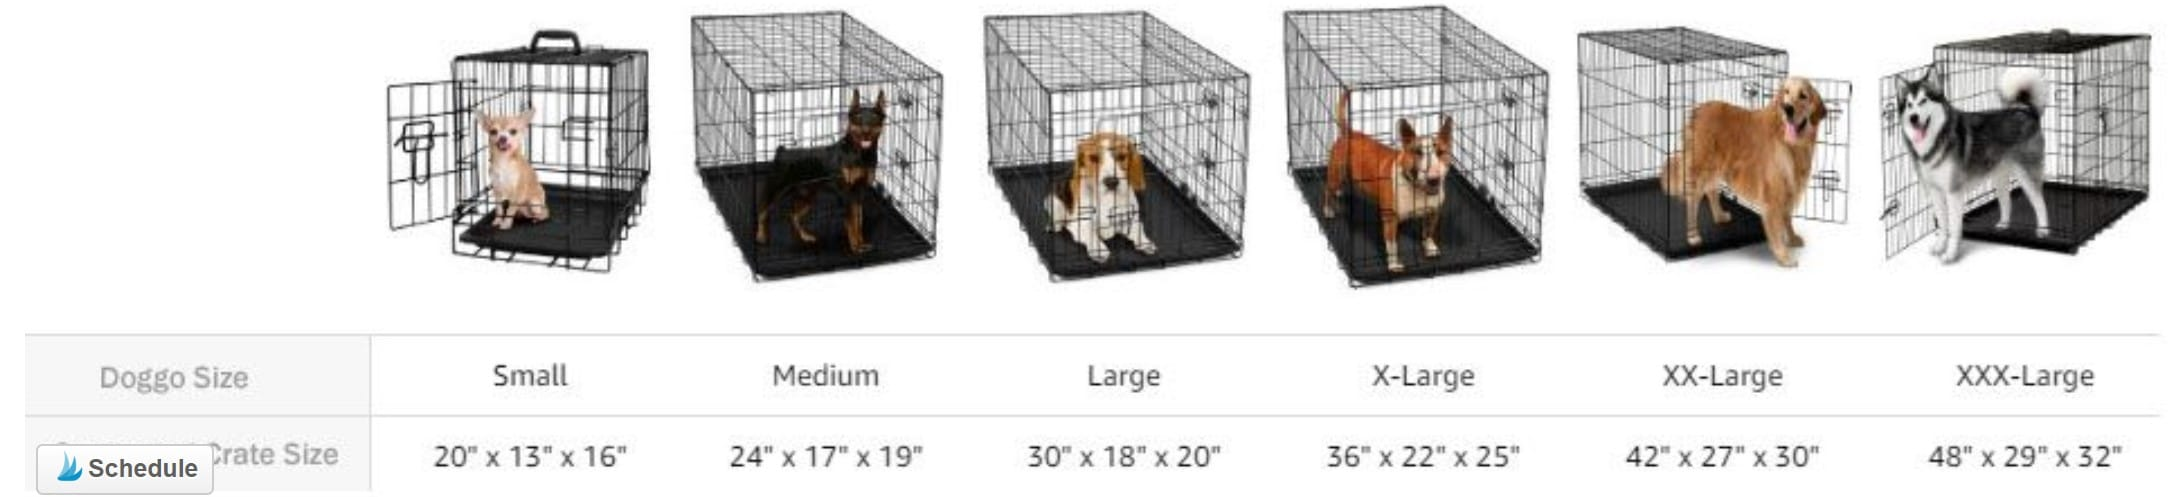 Suggested Dog Crate Sizes